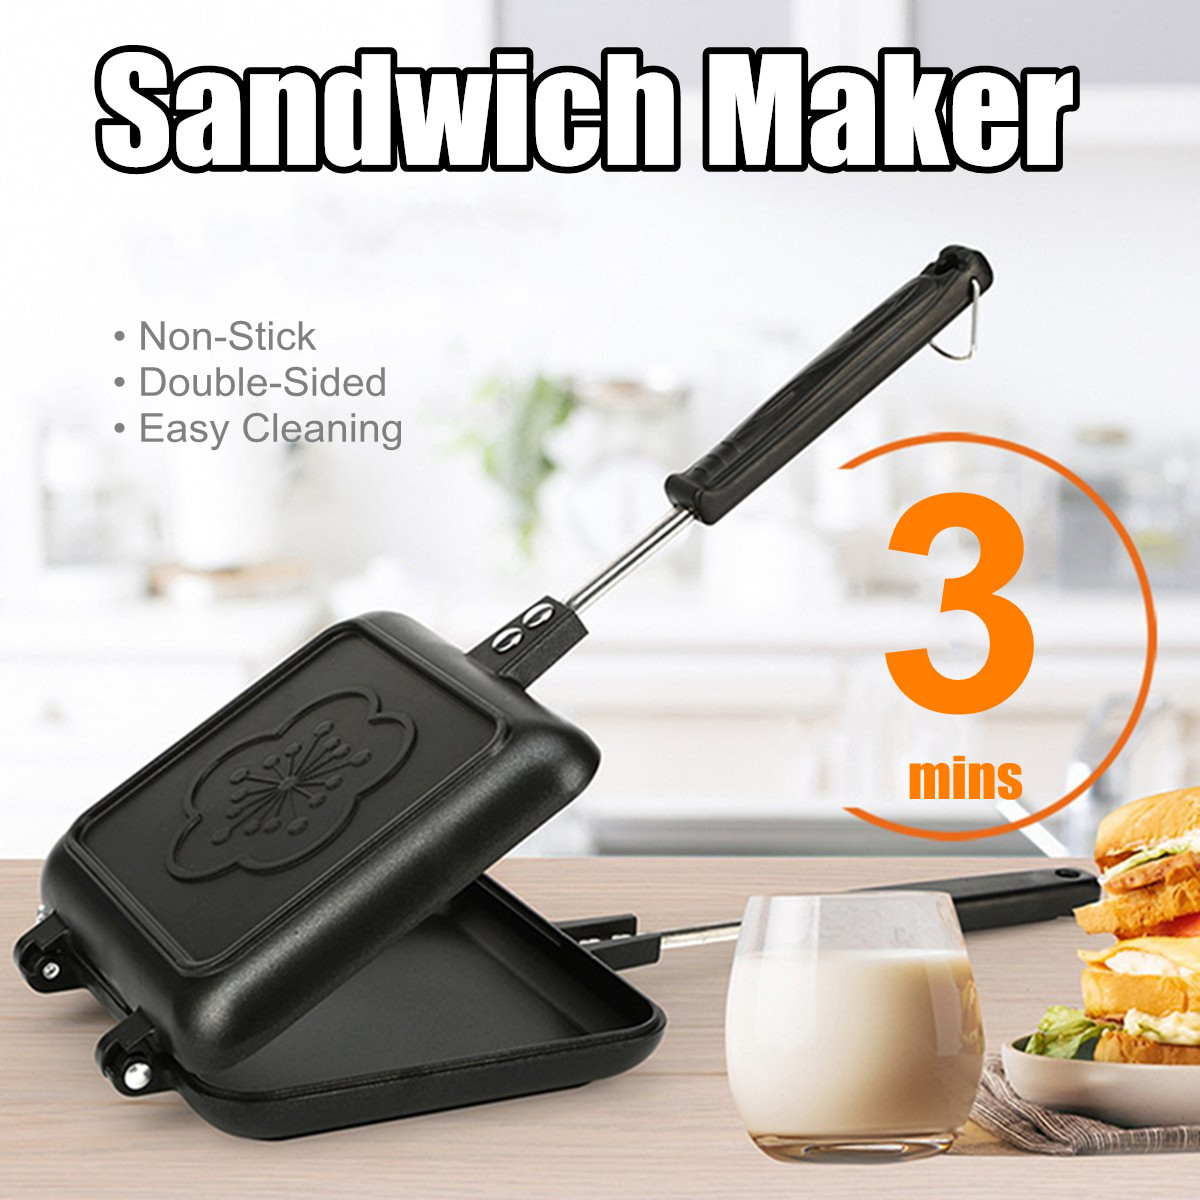 Double-Side Non-Stick Sandwich Maker Bread Toast Breakfast Machine Waffle Pancake Baking Barbecue Oven Mold Grill Frying PanDouble-Side Non-Stick Sandwich Maker Bread Toast Breakfast Machine Waffle Pancake Baking Barbecue Oven Mold Grill Frying Pan